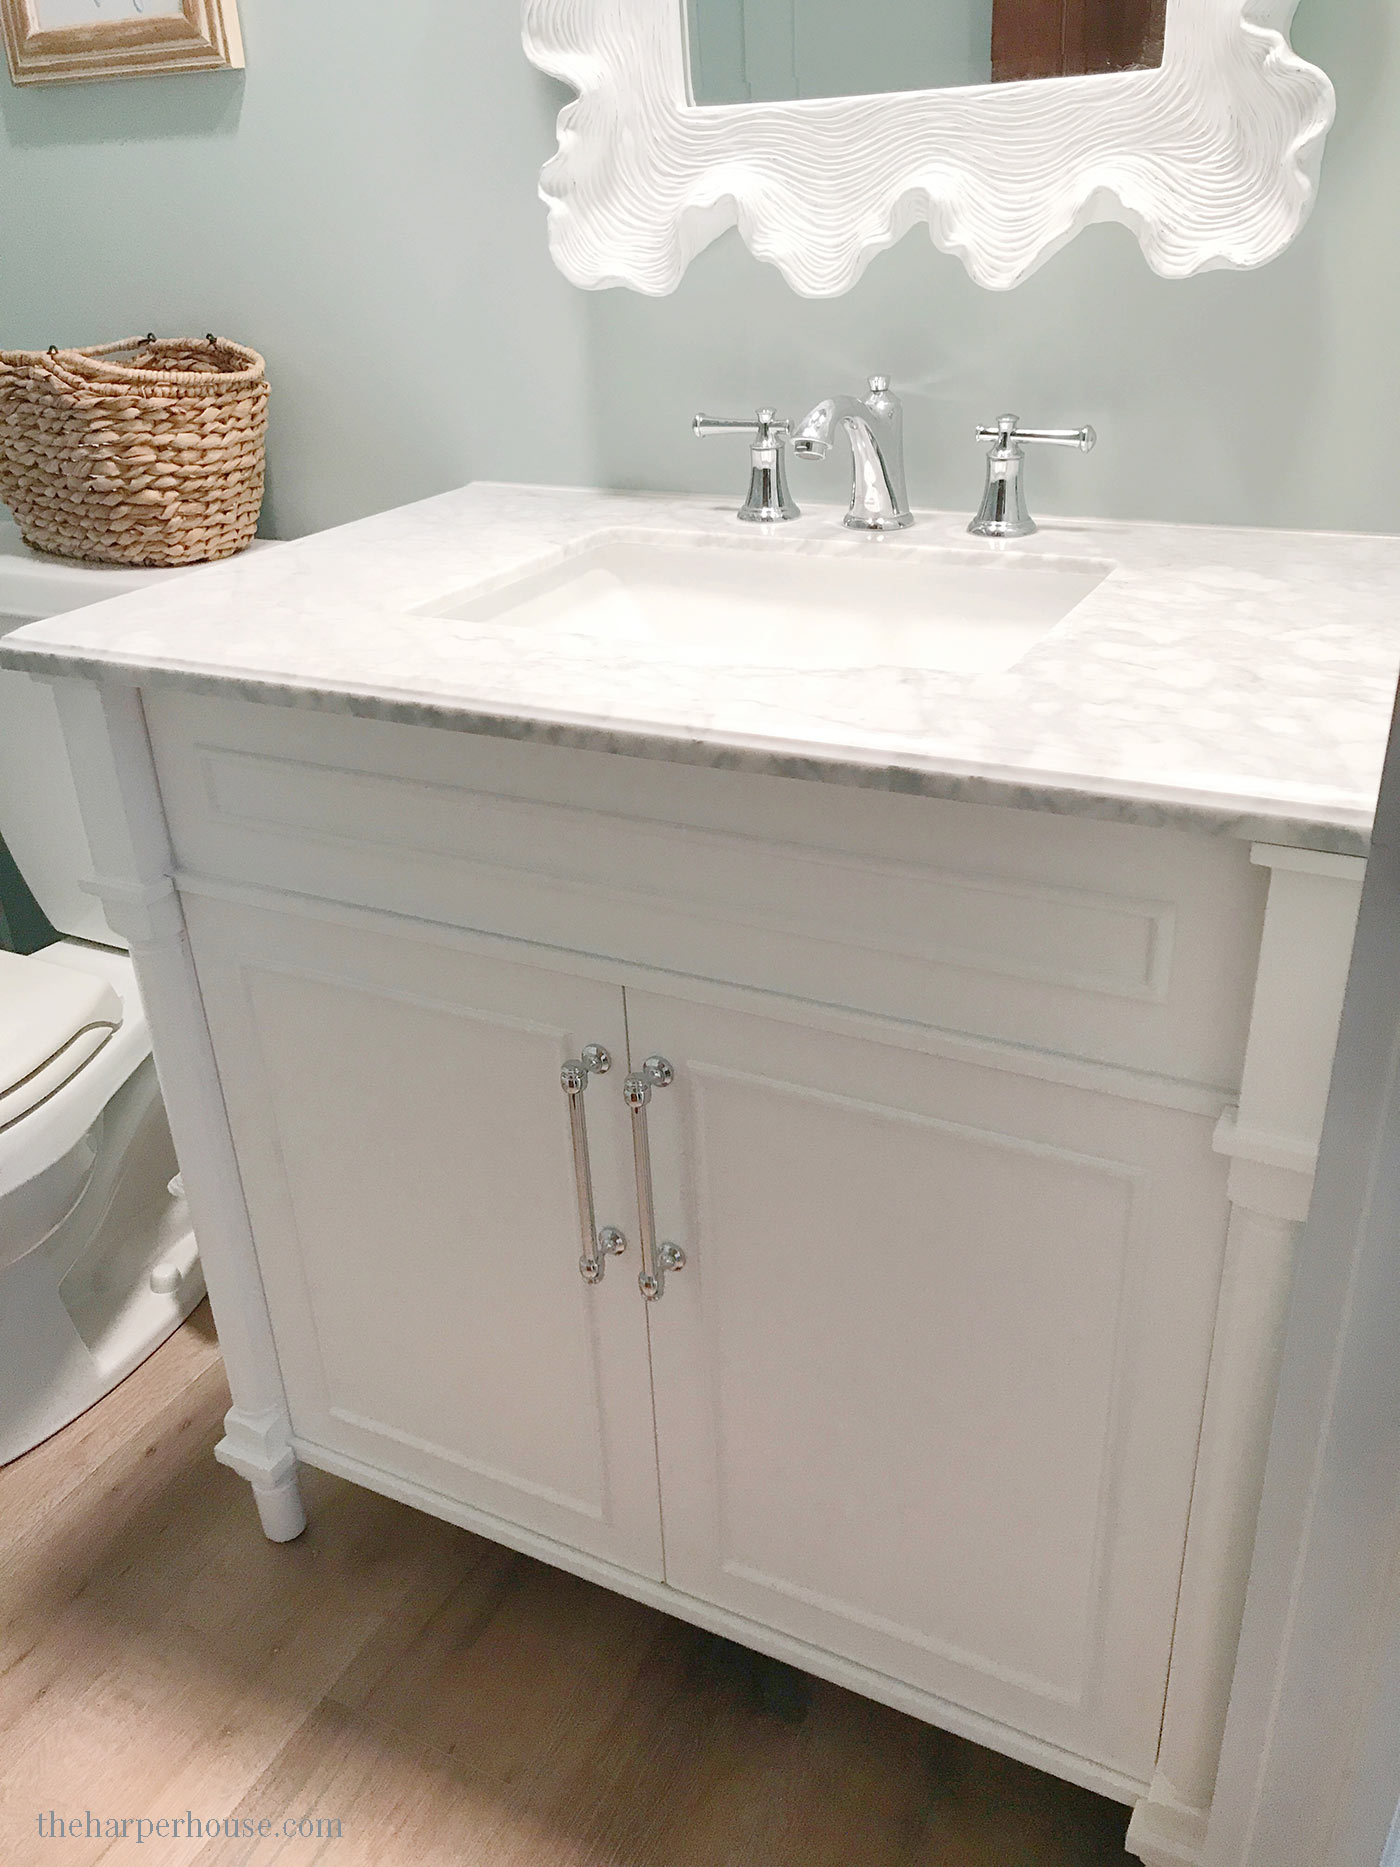 This gorgeous vanity is half the price of a custom piece! See where to purchase on the blog. Get the look for less and save money with budget friendly bathroom design ideas. Bathroom Vanities Single Sink | Bathroom Decorating Ideas | Bathroom Remodeling Ideas | Farmhouse Bathroom | Bathroom Cabinets #bathroomidea #bathroomdesigns #bathroomdecor #bathroomremodel